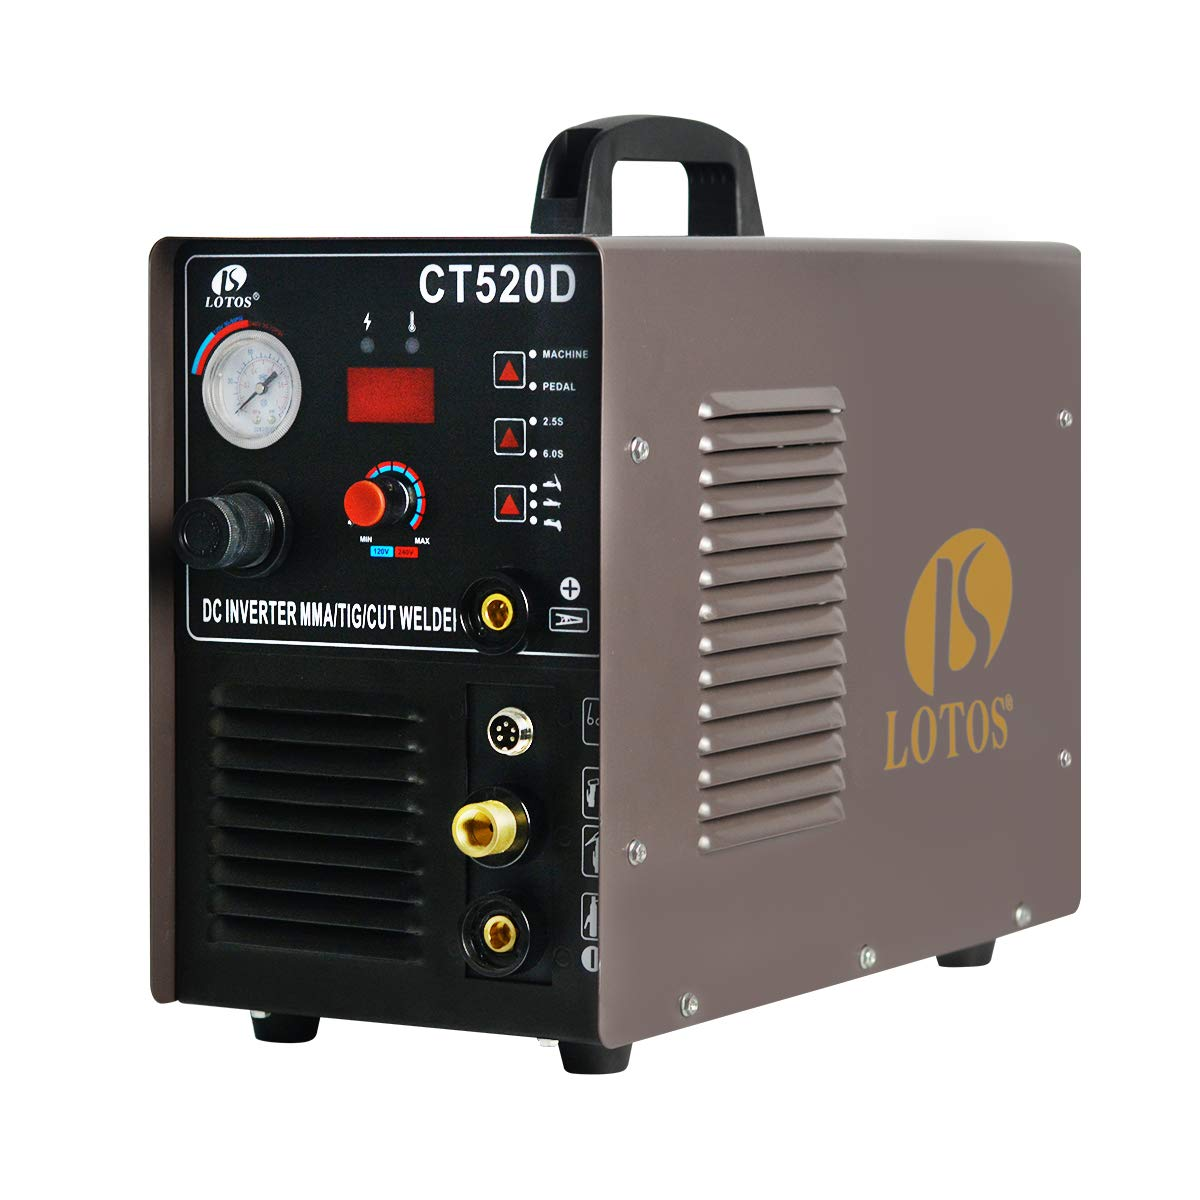 High Frequency Inverter Circuit Diagram Buy Lotos Ct520d Plasma Cutter Tig Stick Welder 3 In 1 Combo Welding Machine 50amp Air 200a Dual Voltage 220v 110v Power